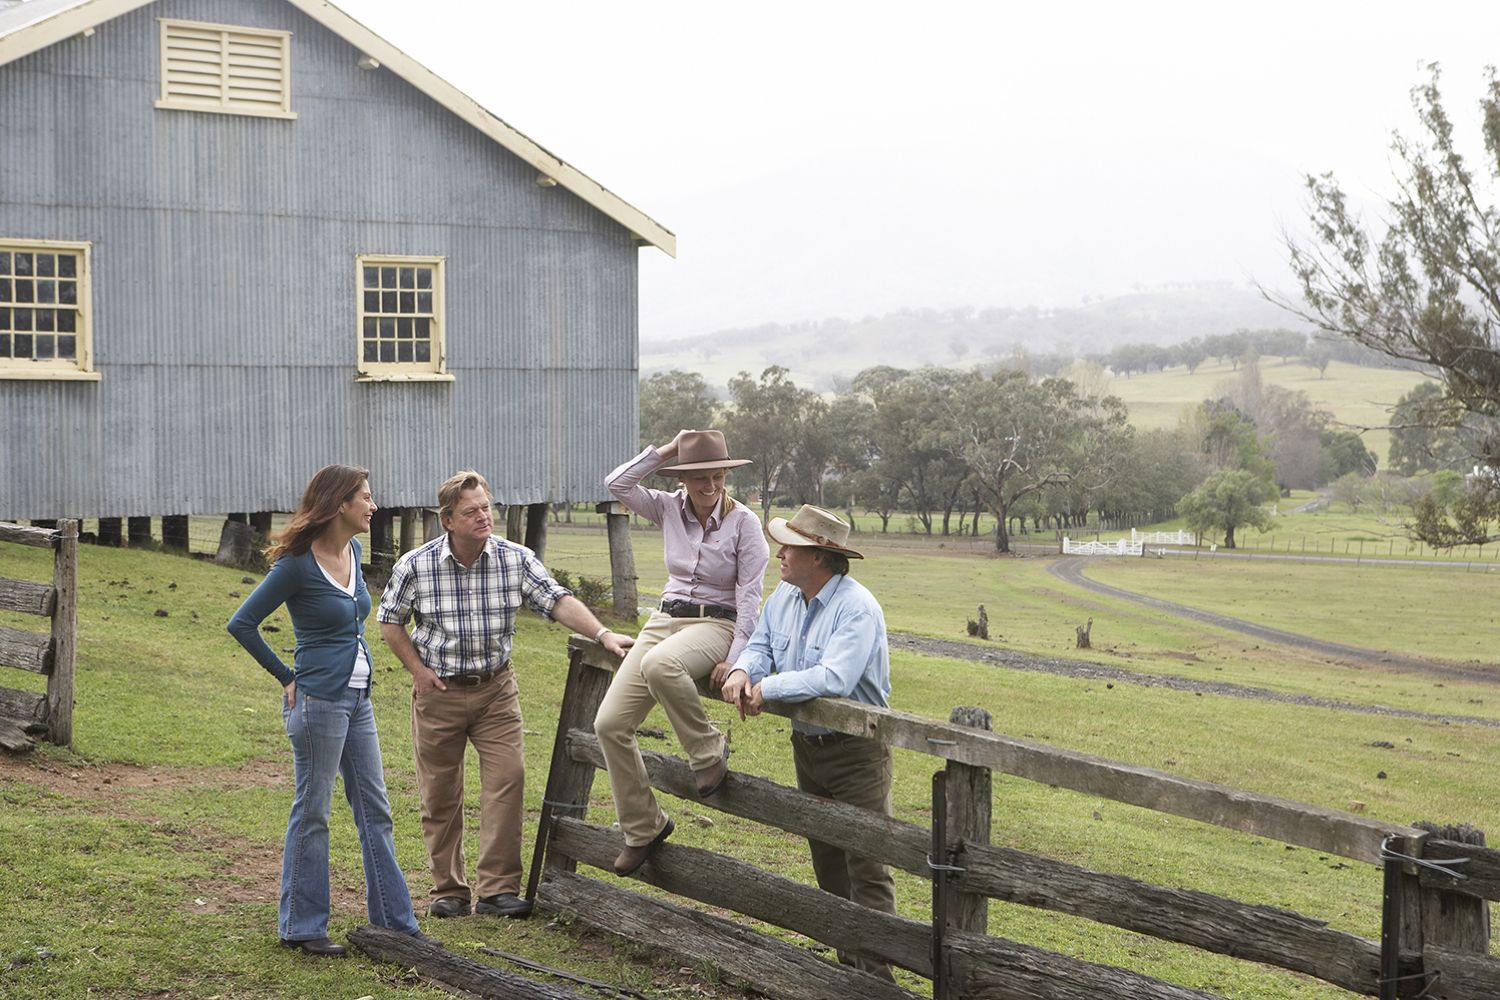 Small group of people relaxing at the fence gate near the shearing sheds at Belltrees Estate in Scone, Upper Hunter